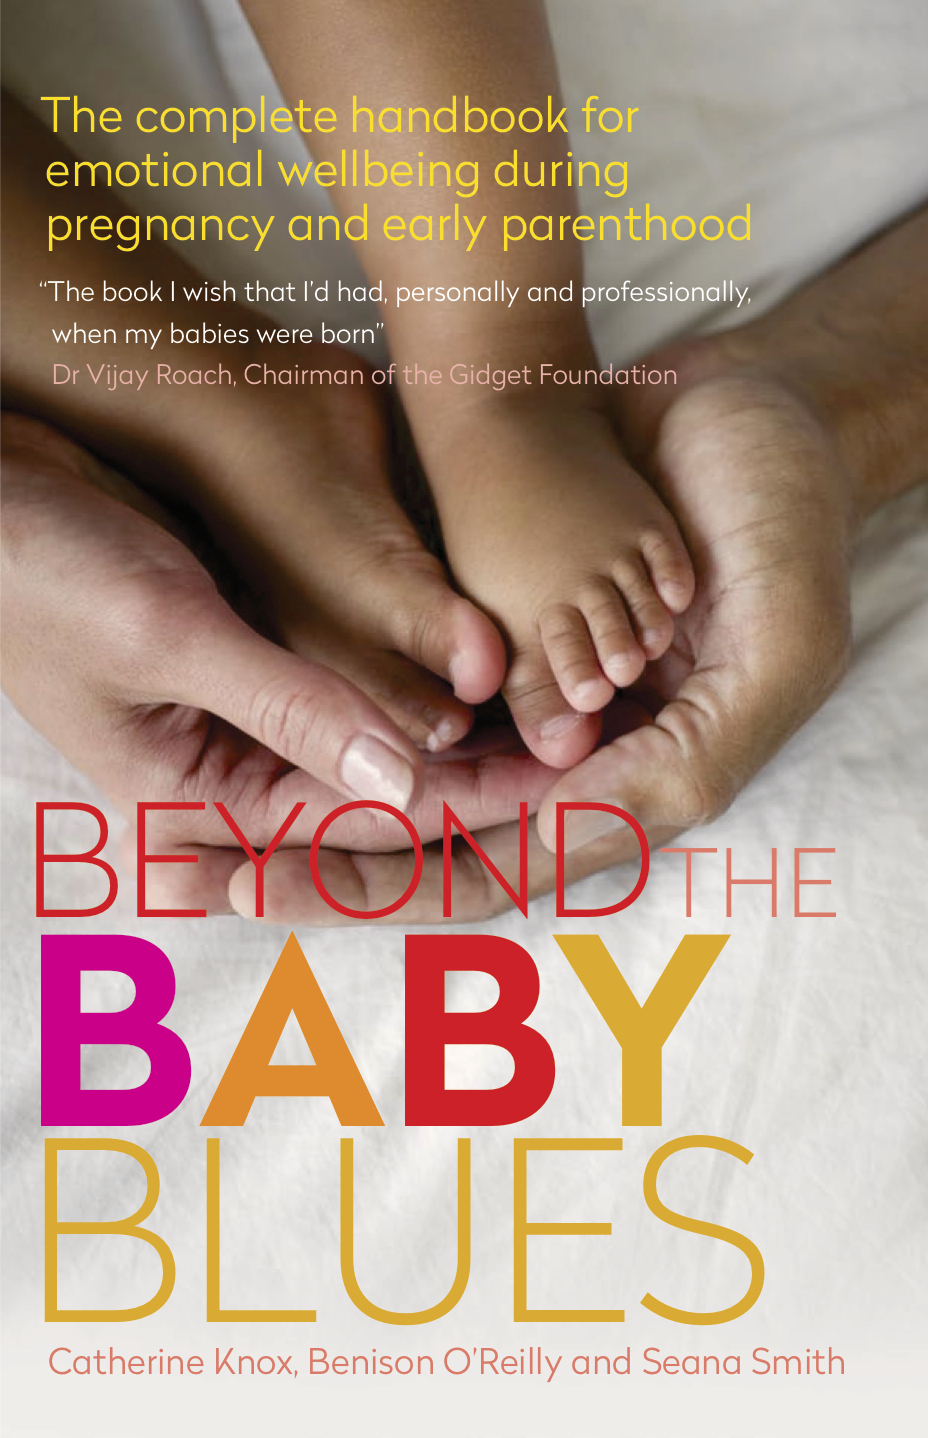 Beyond-The-Baby-Blues